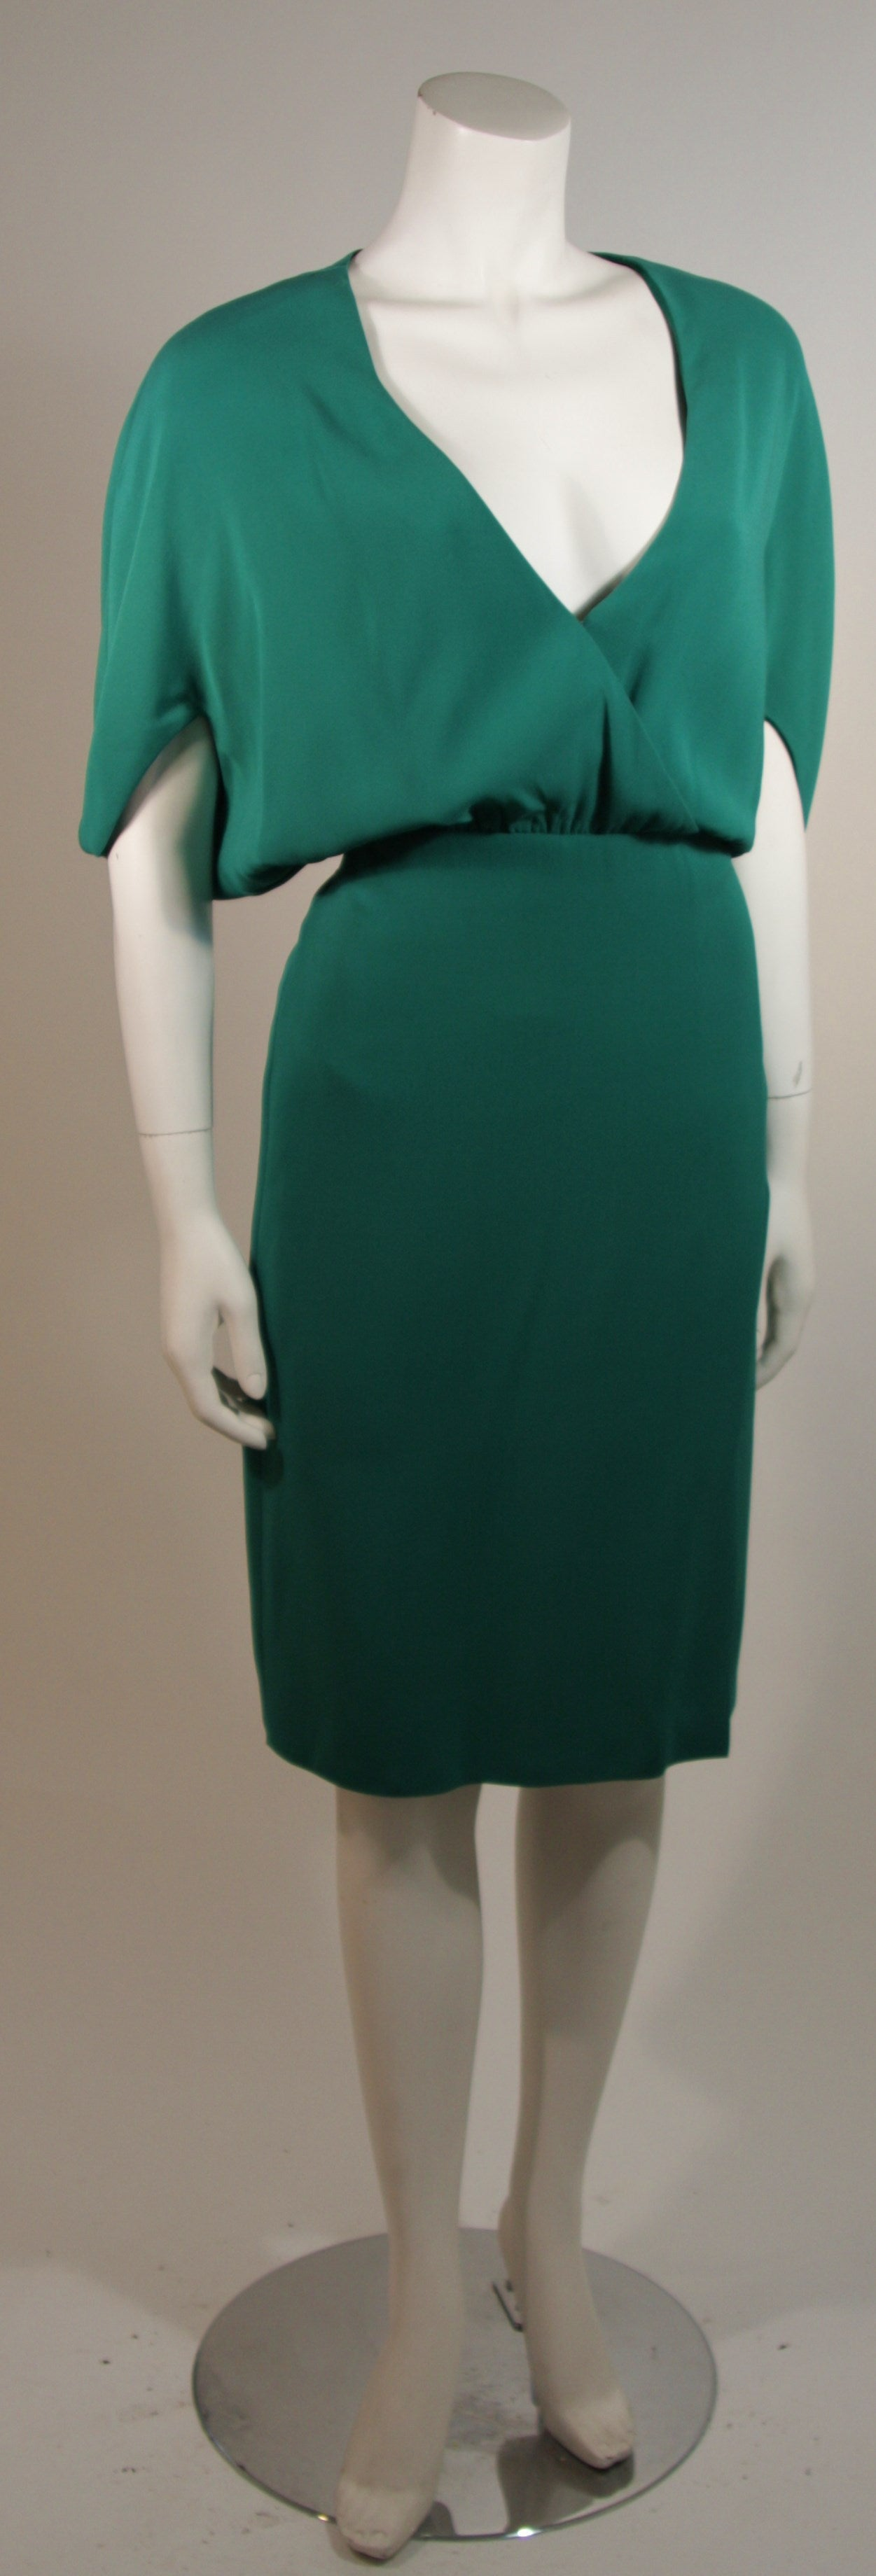 This Valentino dress is composed of a stunning green silk with a striking plunge neckline. There are batwing style sleeves, a hook and eye option at the bust, and a side zipper closure. Made in Italy.   Measures (Approximately) Length: 43